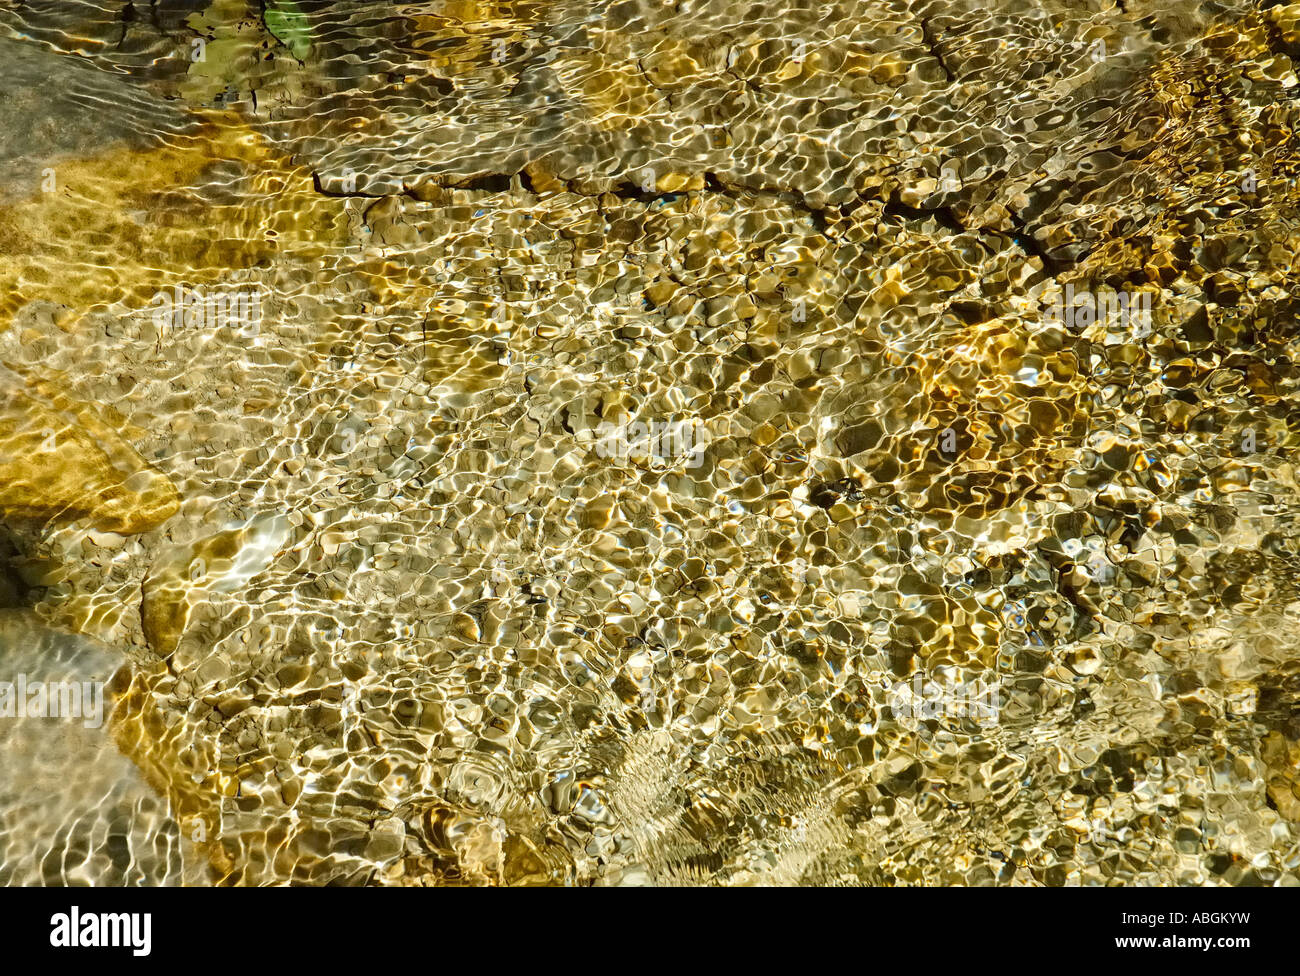 Rippling waves of a mountain brook generates light interferences in cristall clear water - Stock Image